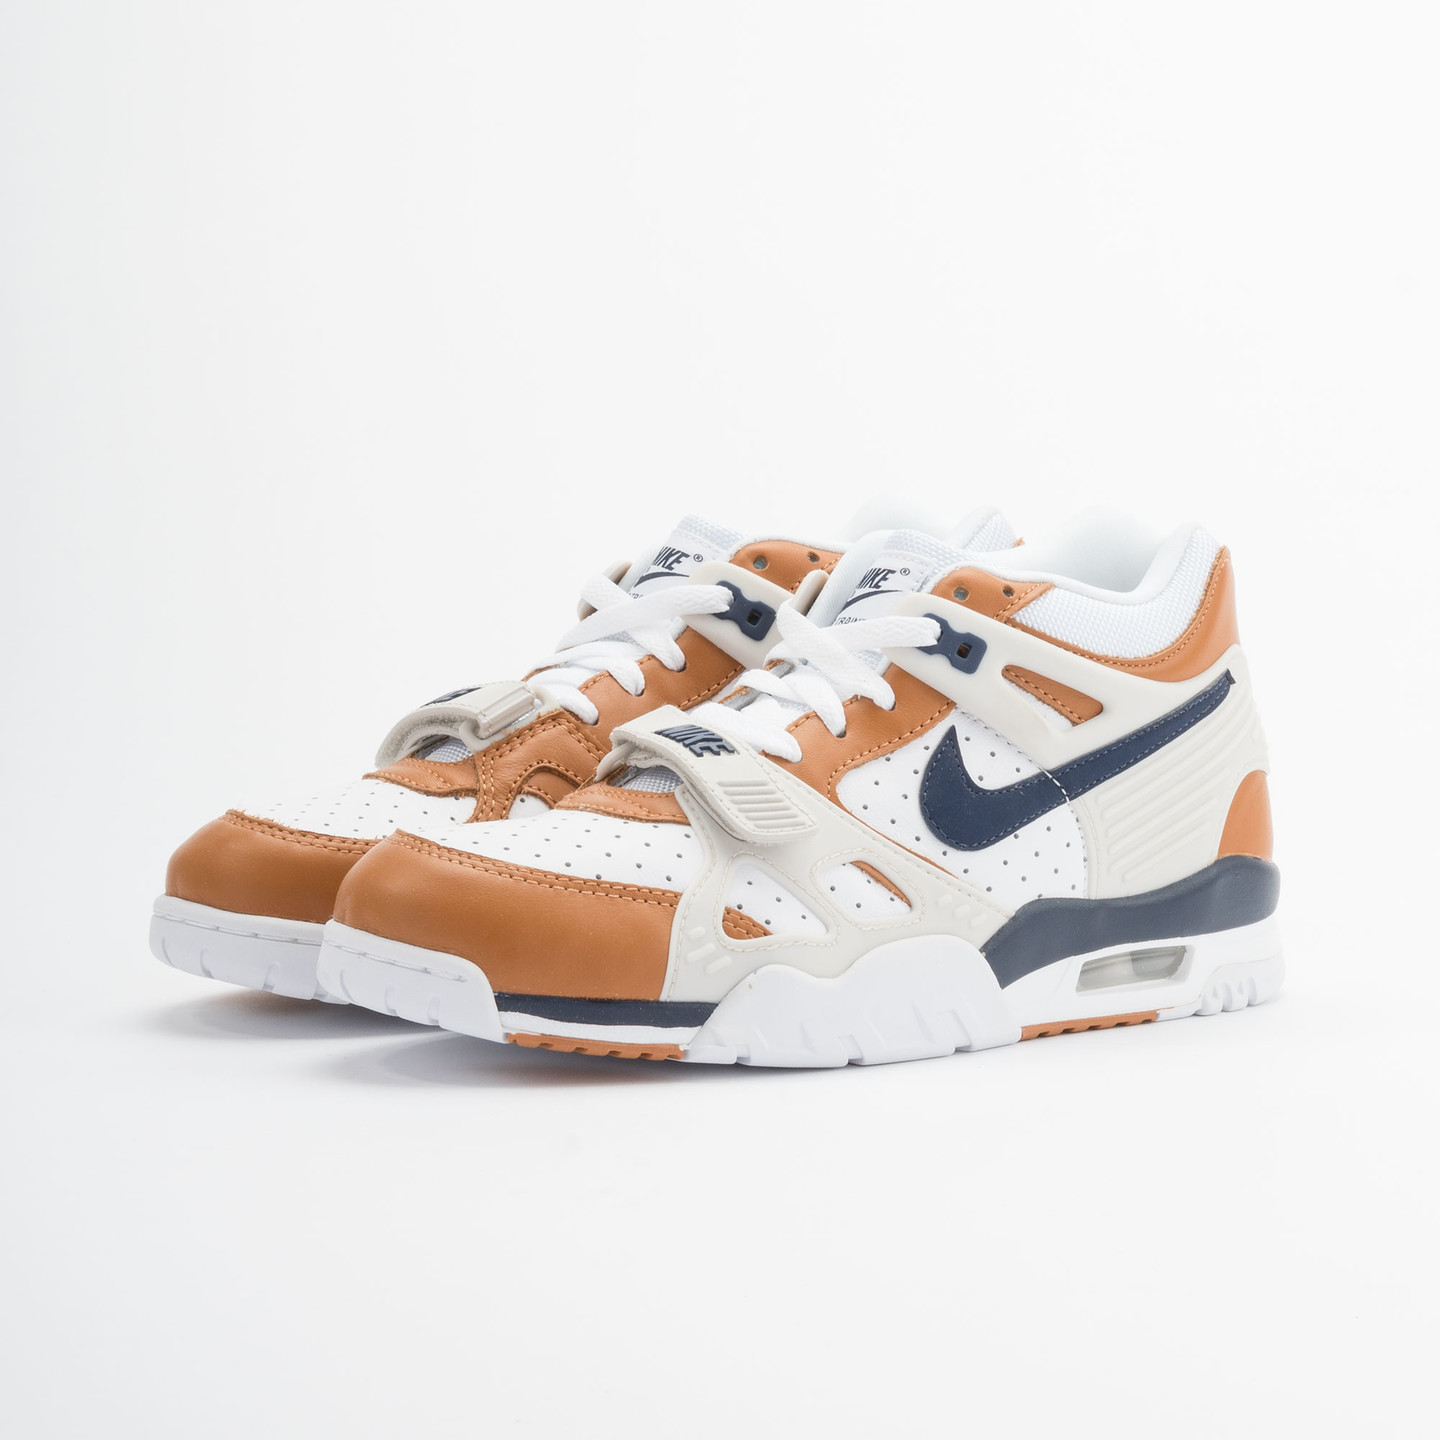 Nike Air Trainer 3 Premium Medicine Ball White/Mid Navy-Gngr-Lght Bn 705425-100-39